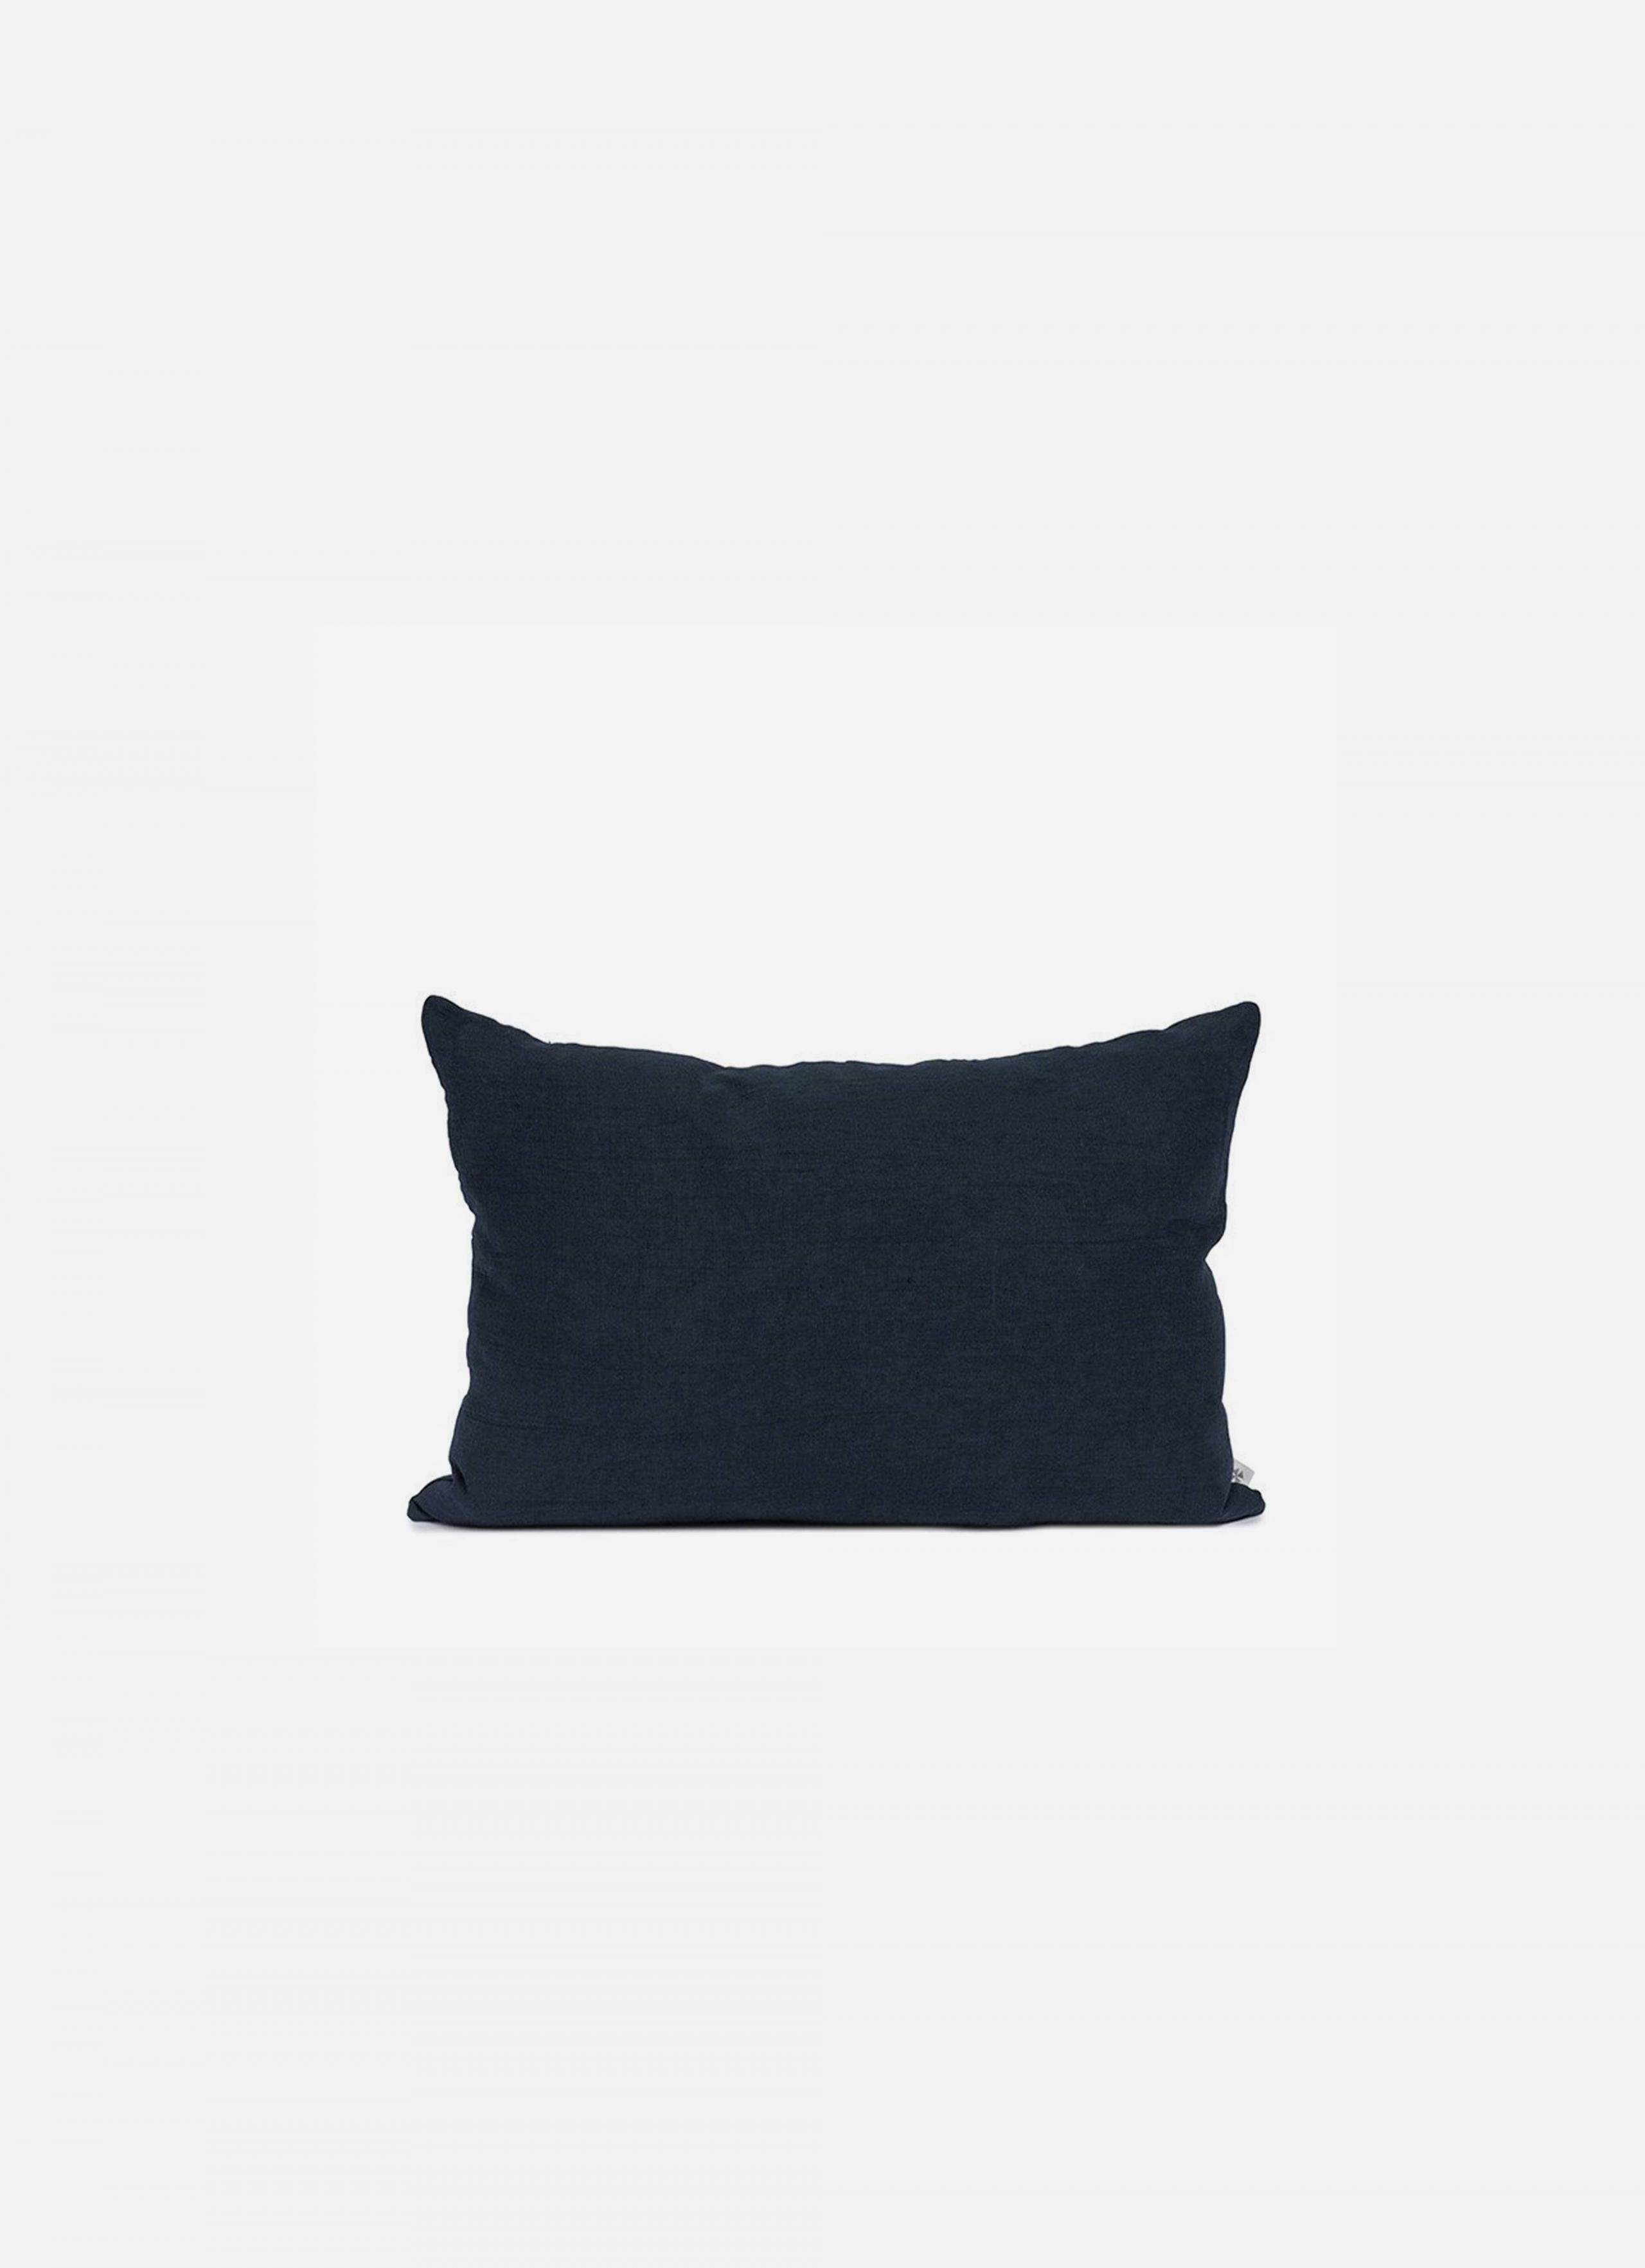 By Mölle - Linen cushion - indigo - 40x60cm